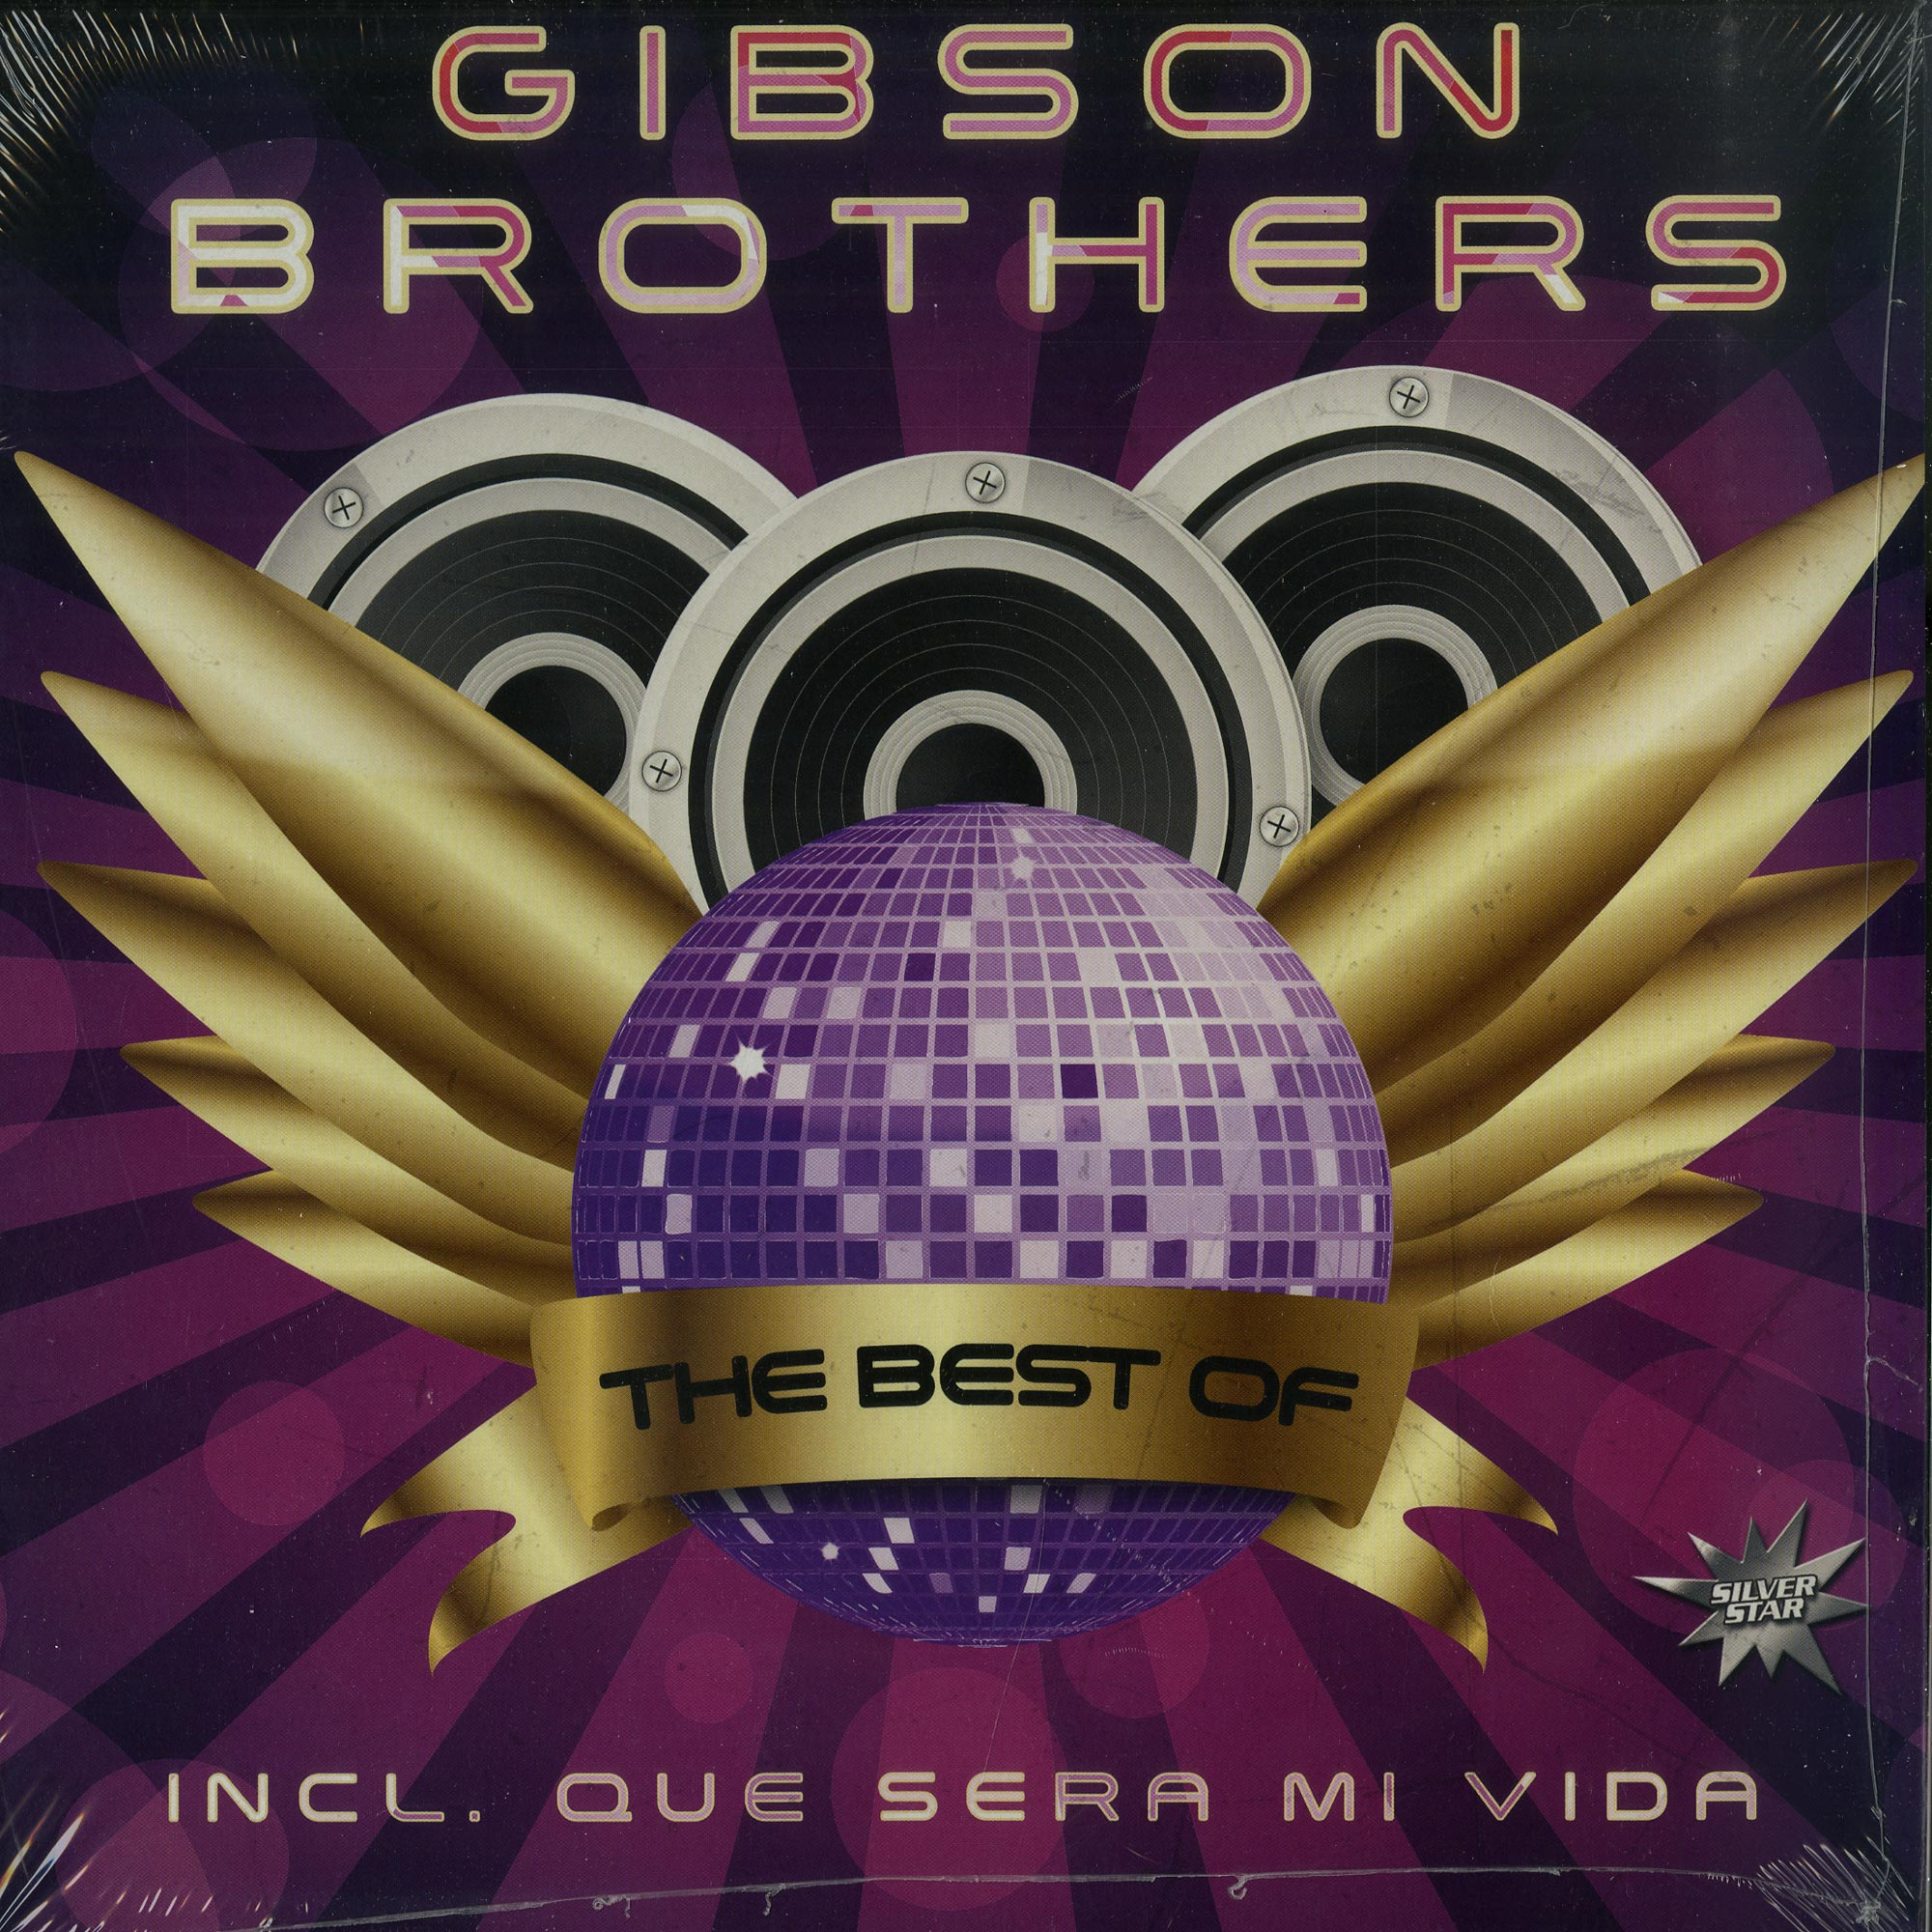 Gibson Brothers - THE BEST OF